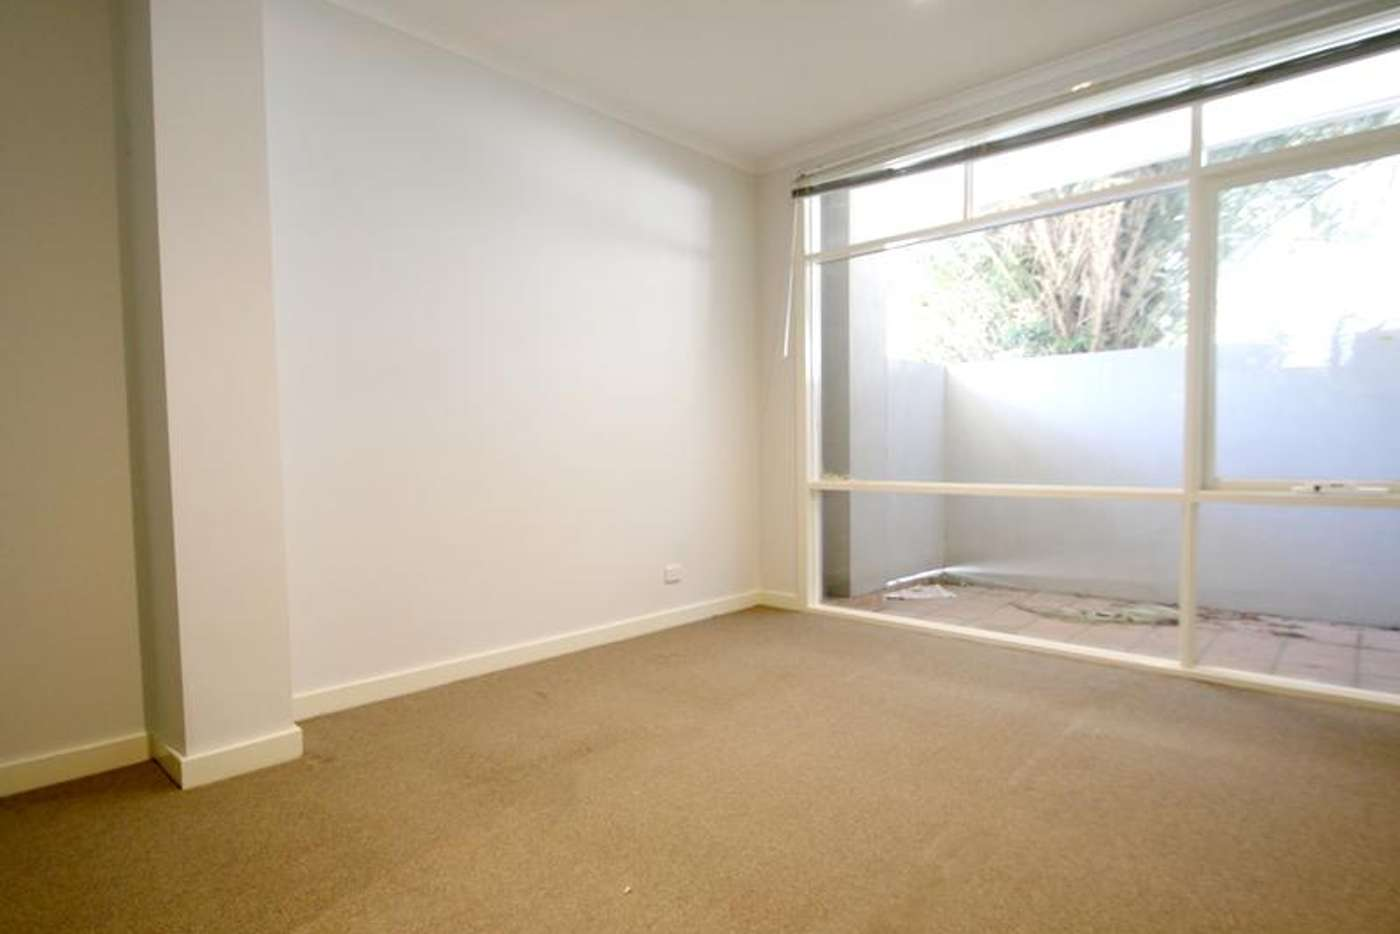 Seventh view of Homely apartment listing, 112/445 Royal Parade, Parkville VIC 3052